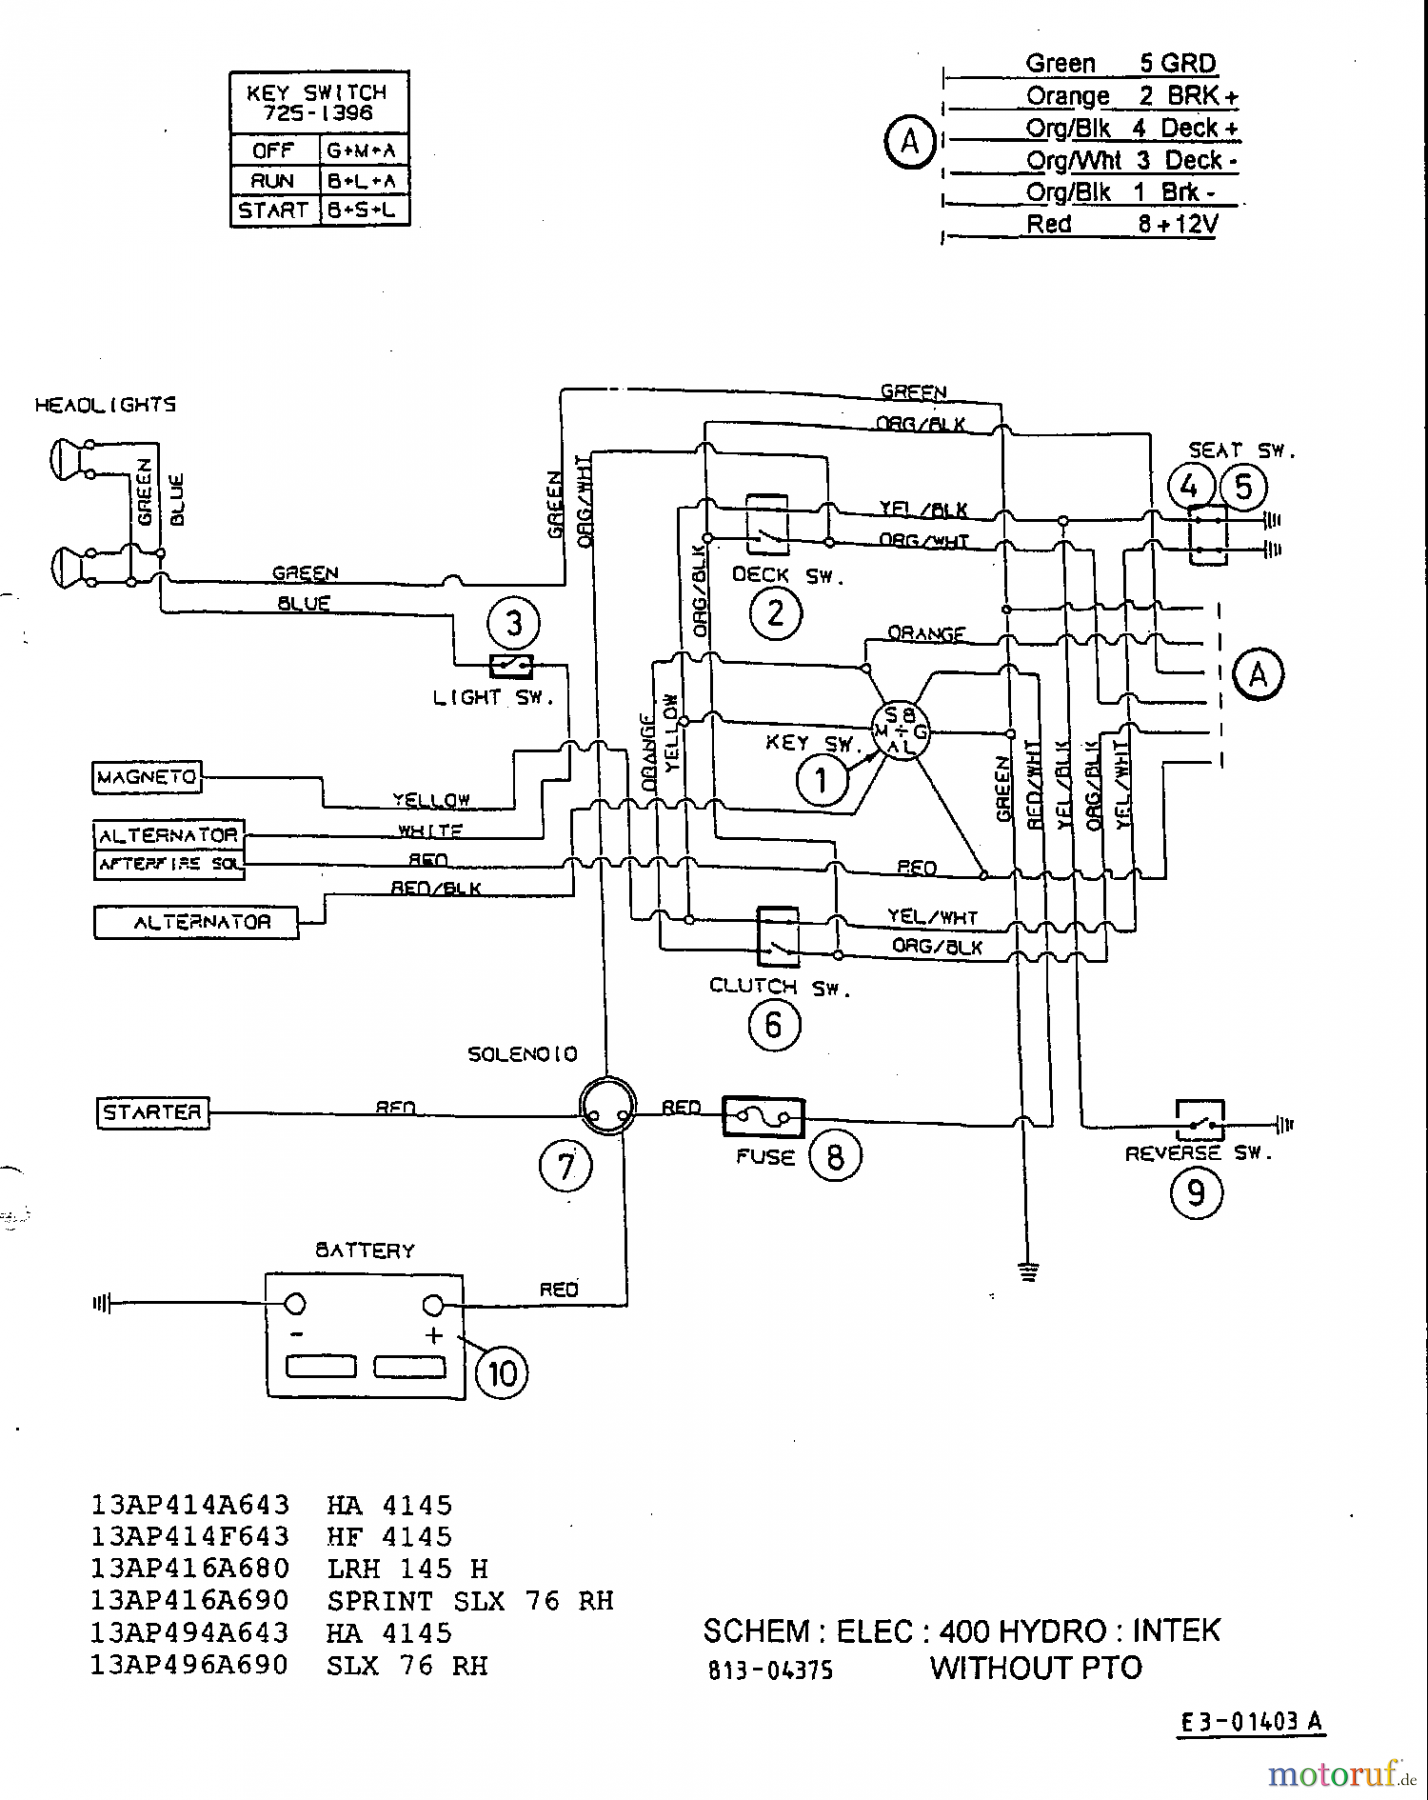 WRG-7799] Mtd Fuses Diagram on